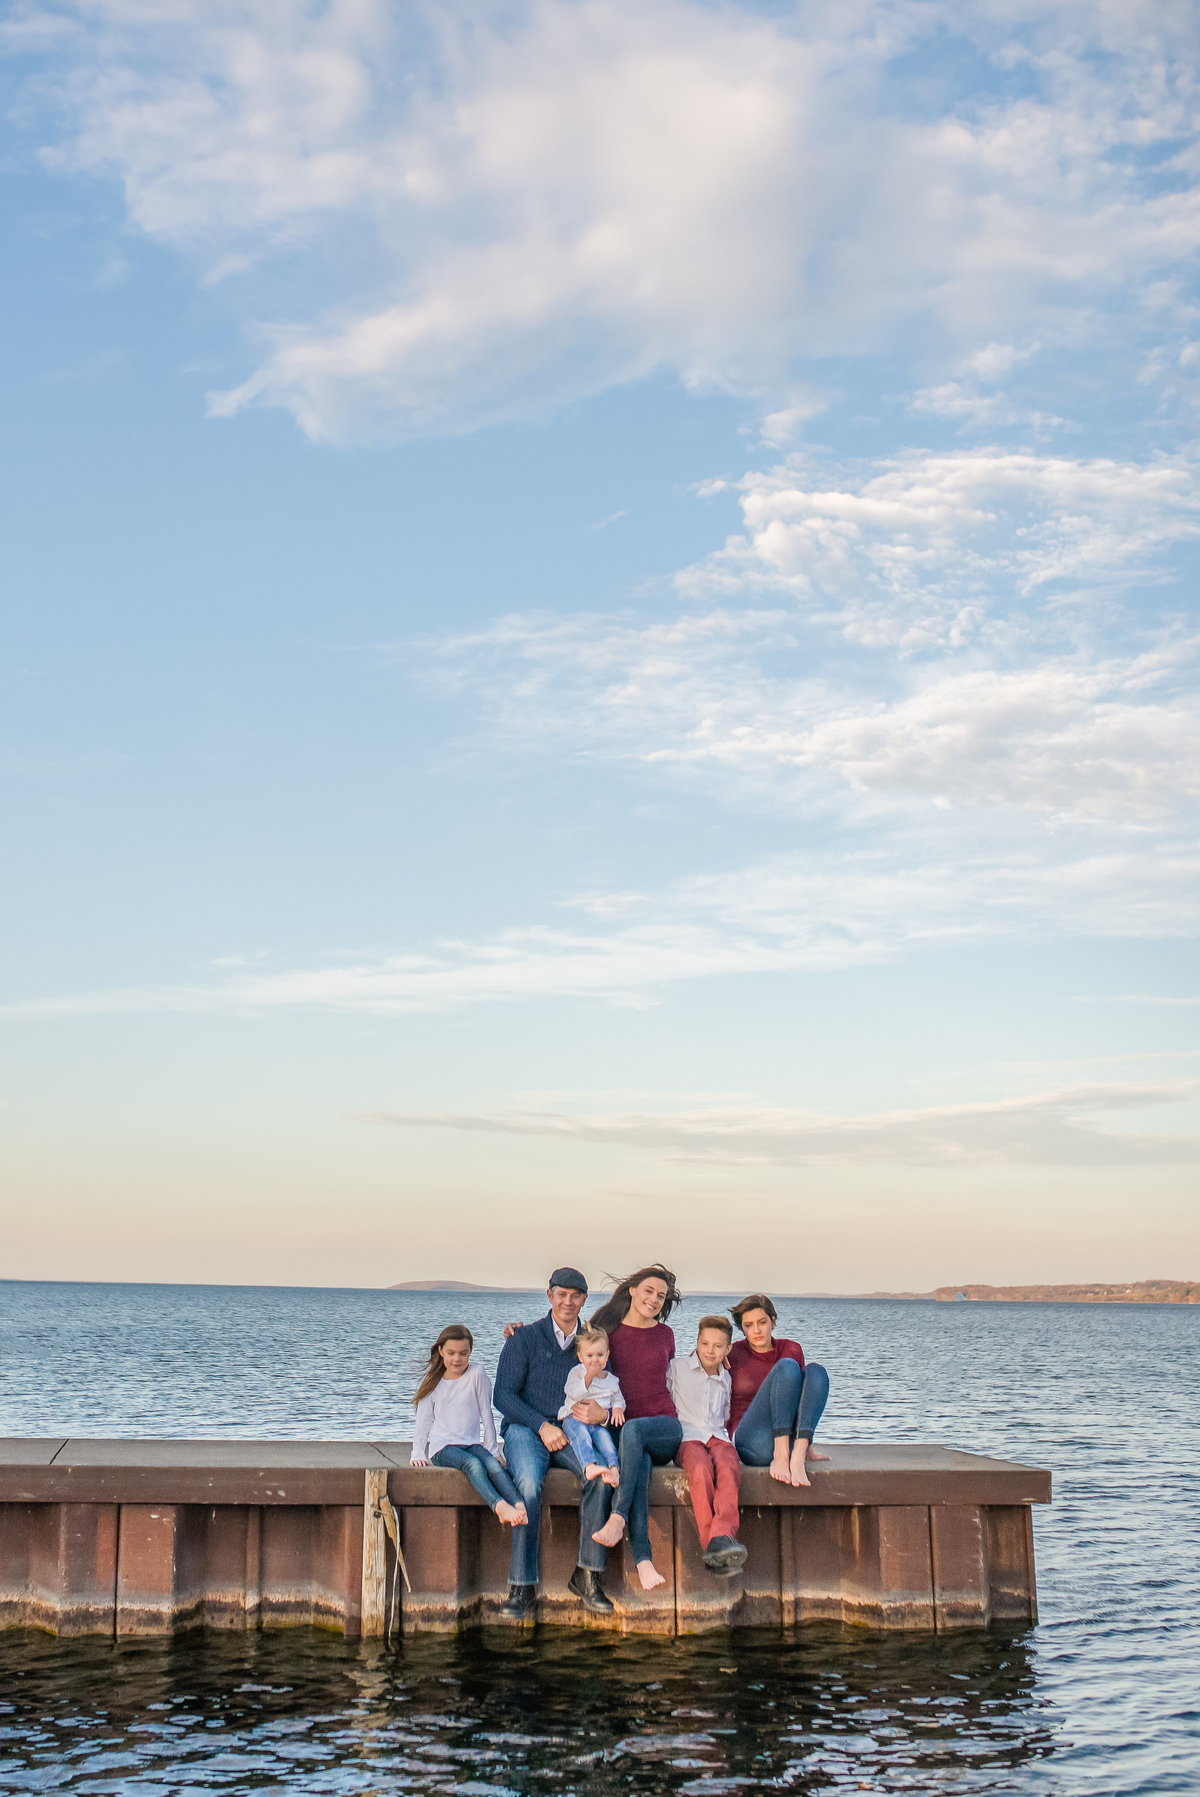 Parker Family - Clinch Park Traverse City Oden & Janelle Photography- 02 | JJH_4530-Edit